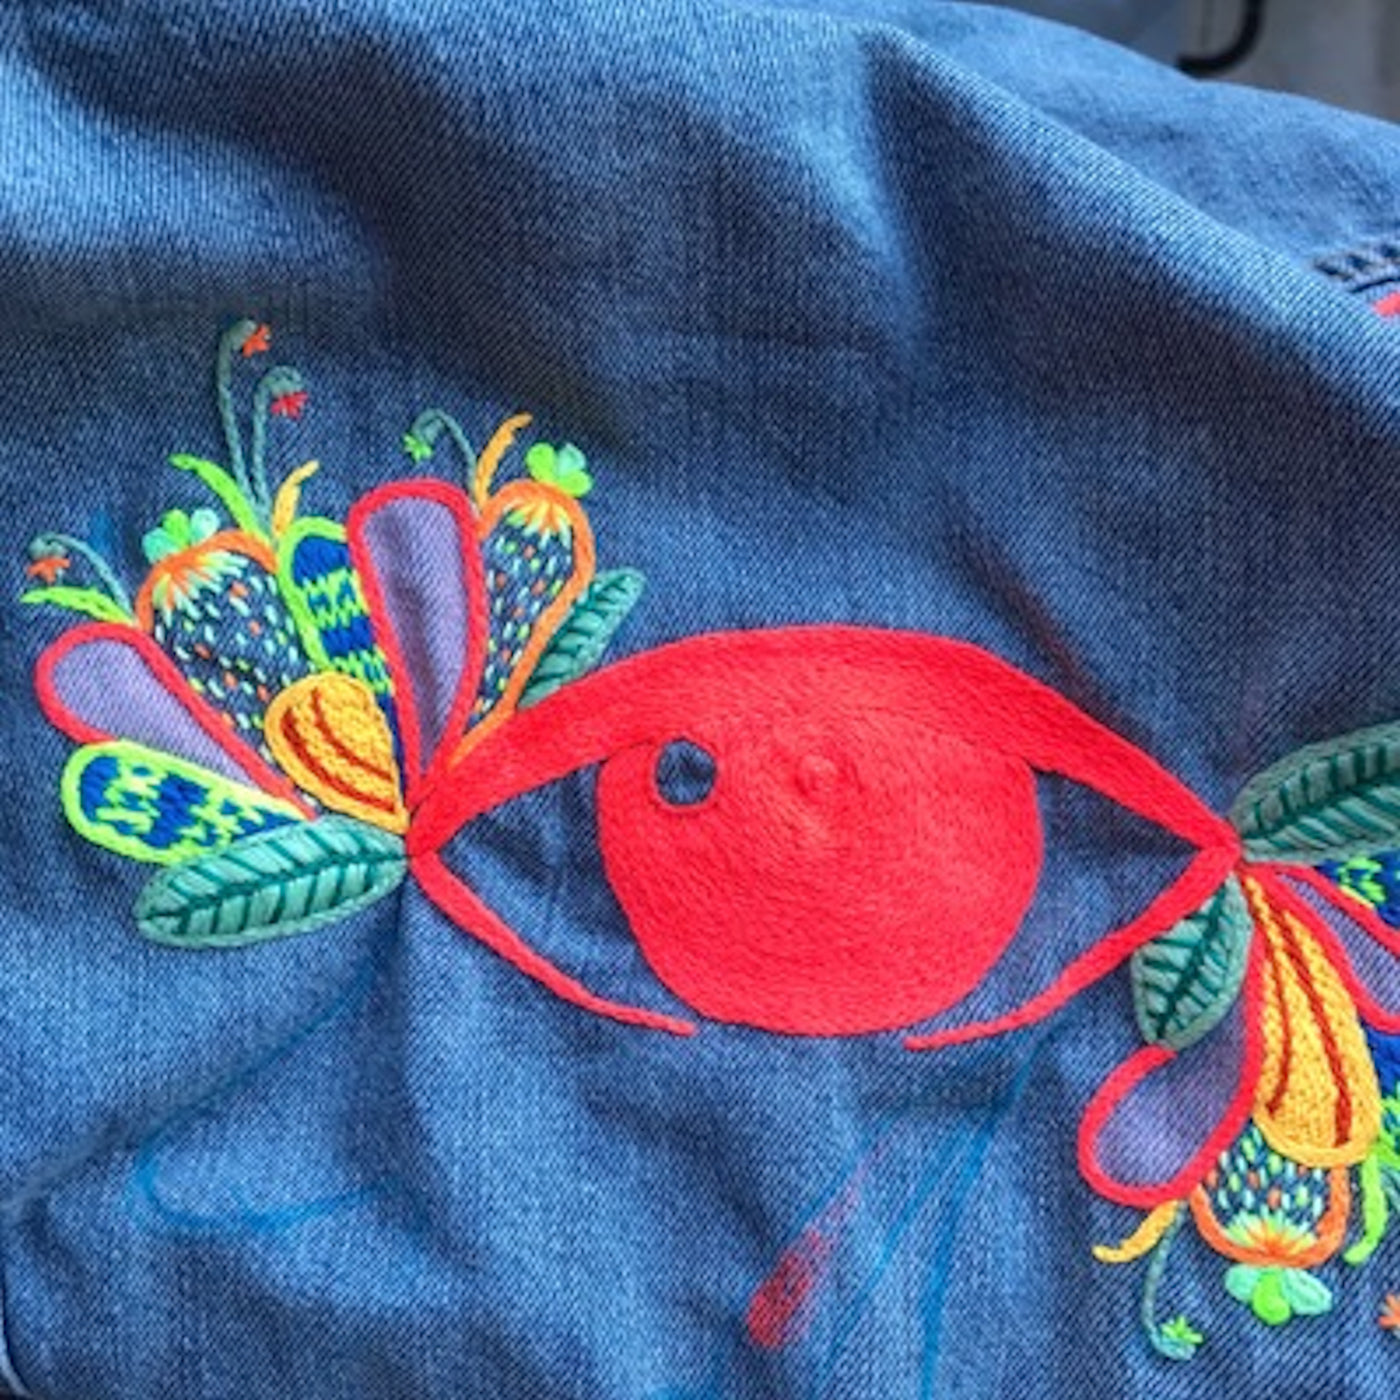 Embroidery Workshop - August 5th